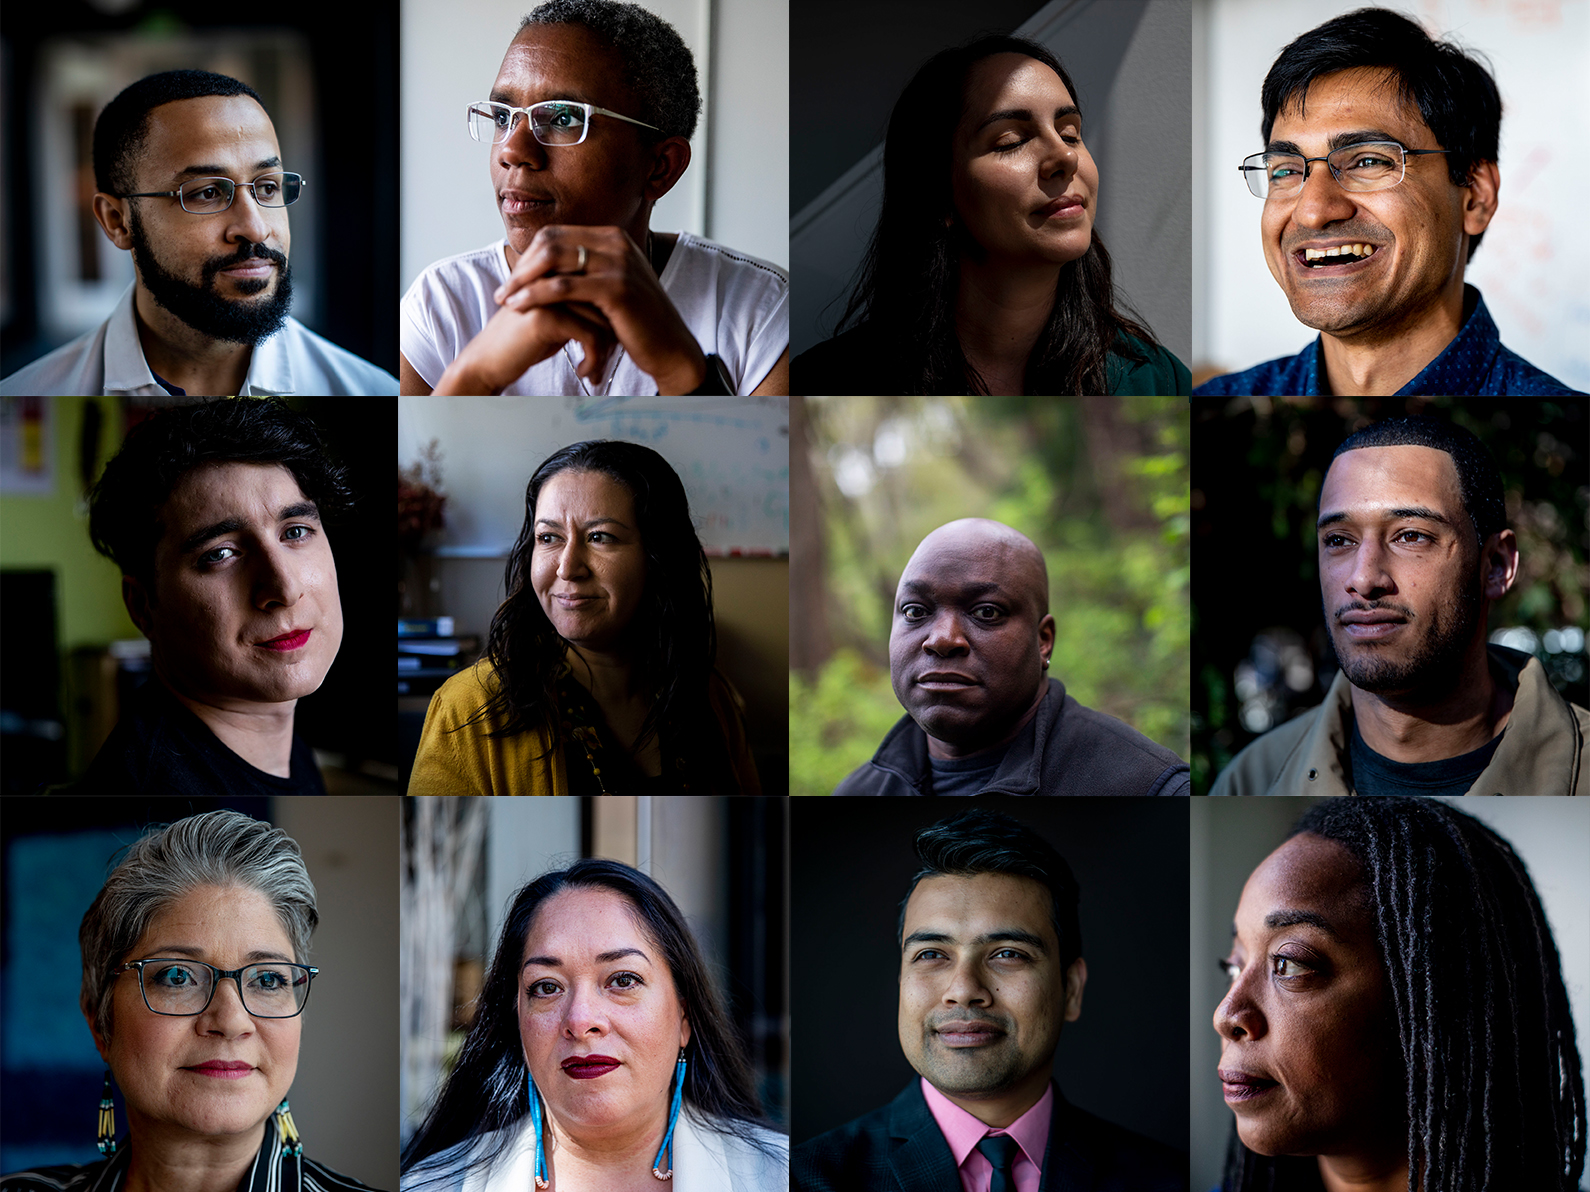 "Crosscut's ""I Am STEM"" profiles included, left to right, starting from top row, Eric Nealy, Crystal C. Hall, Corrie Ortega, Rahul Banerjee, Os Keyes, Tracie Delgado, Morris Johnson, Clint Robins, Maia Bellon, Abigail Echo-Hawk, Bish Paul and Tarika Powell (Photo by Dorothy Edwards/Crosscut)."